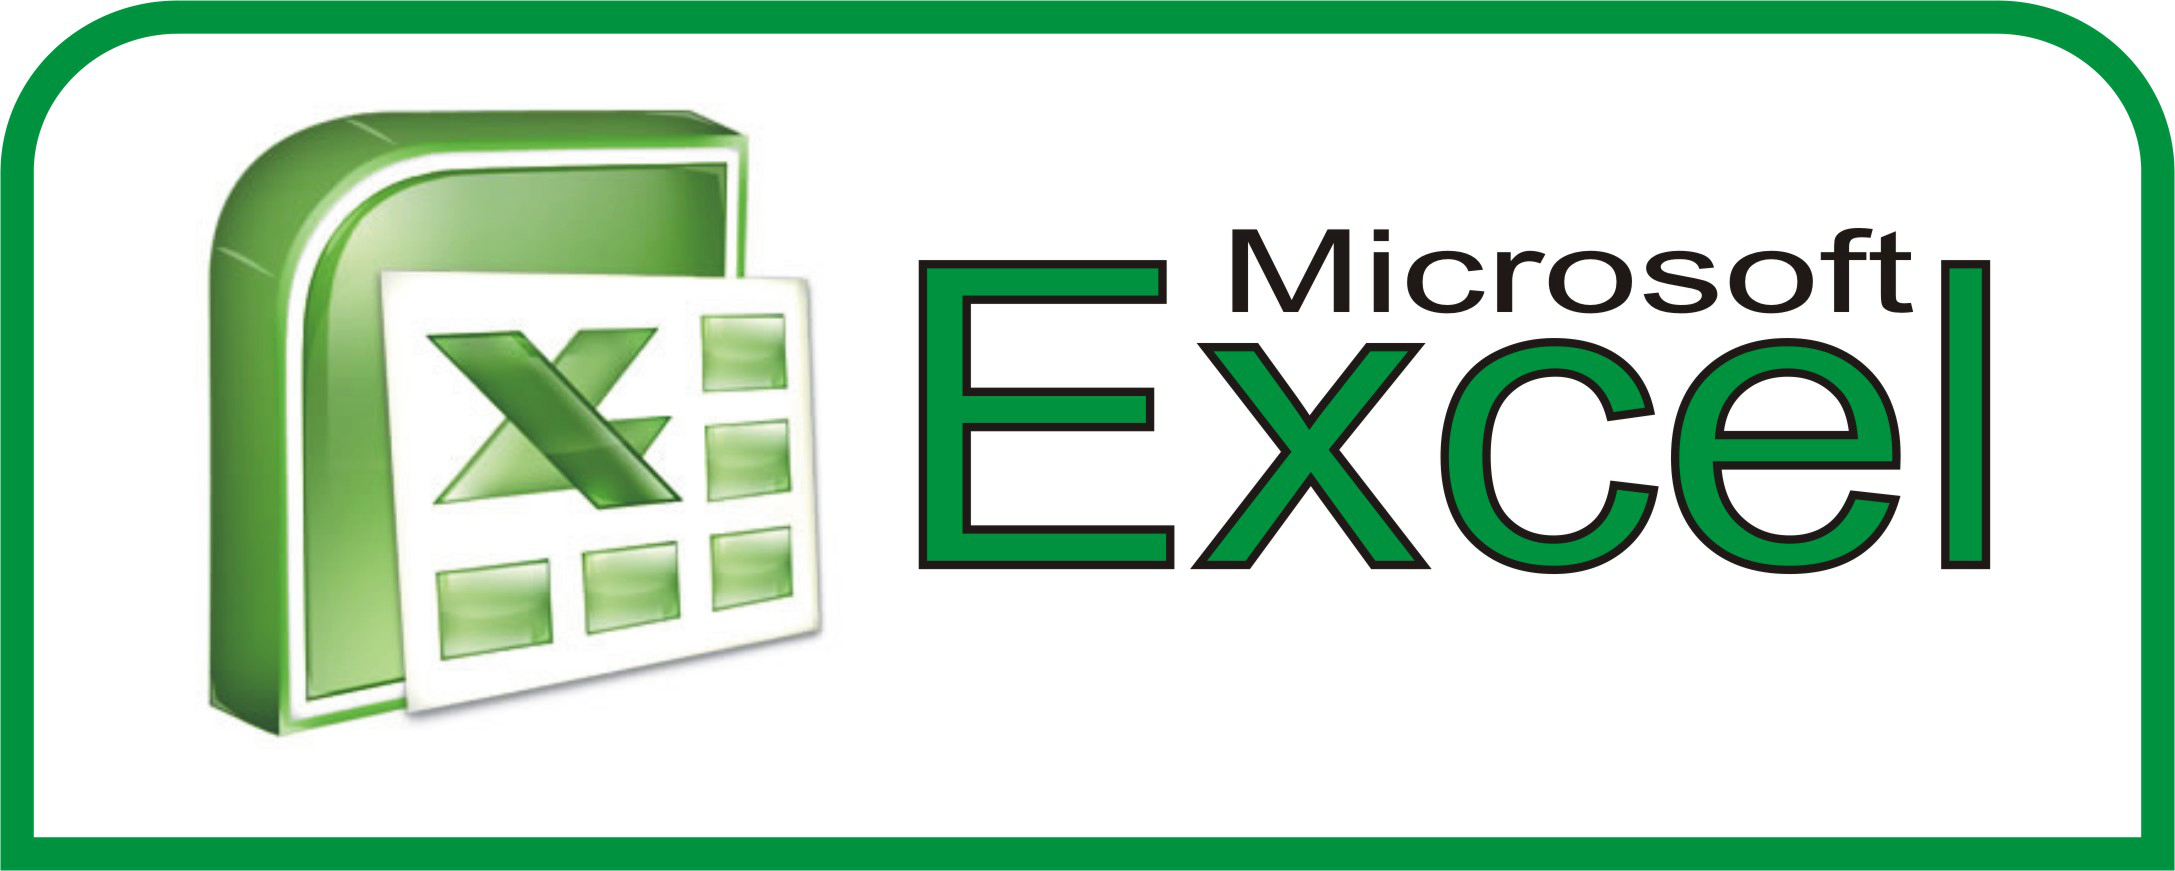 Ediblewildsus  Sweet  Excel Shortcuts You Probably Didnt Know About  Techdissected With Engaging Solver In Excel Besides Excel Arrow Keys Not Working Furthermore Excel Formulas Not Updating With Attractive Excel For Iphone Also How To Remove Duplicates Excel In Addition Excel Countif Multiple Criteria And Excel Pivot Chart As Well As Excel Not Opening Additionally Count If Excel From Techdissectedcom With Ediblewildsus  Engaging  Excel Shortcuts You Probably Didnt Know About  Techdissected With Attractive Solver In Excel Besides Excel Arrow Keys Not Working Furthermore Excel Formulas Not Updating And Sweet Excel For Iphone Also How To Remove Duplicates Excel In Addition Excel Countif Multiple Criteria From Techdissectedcom